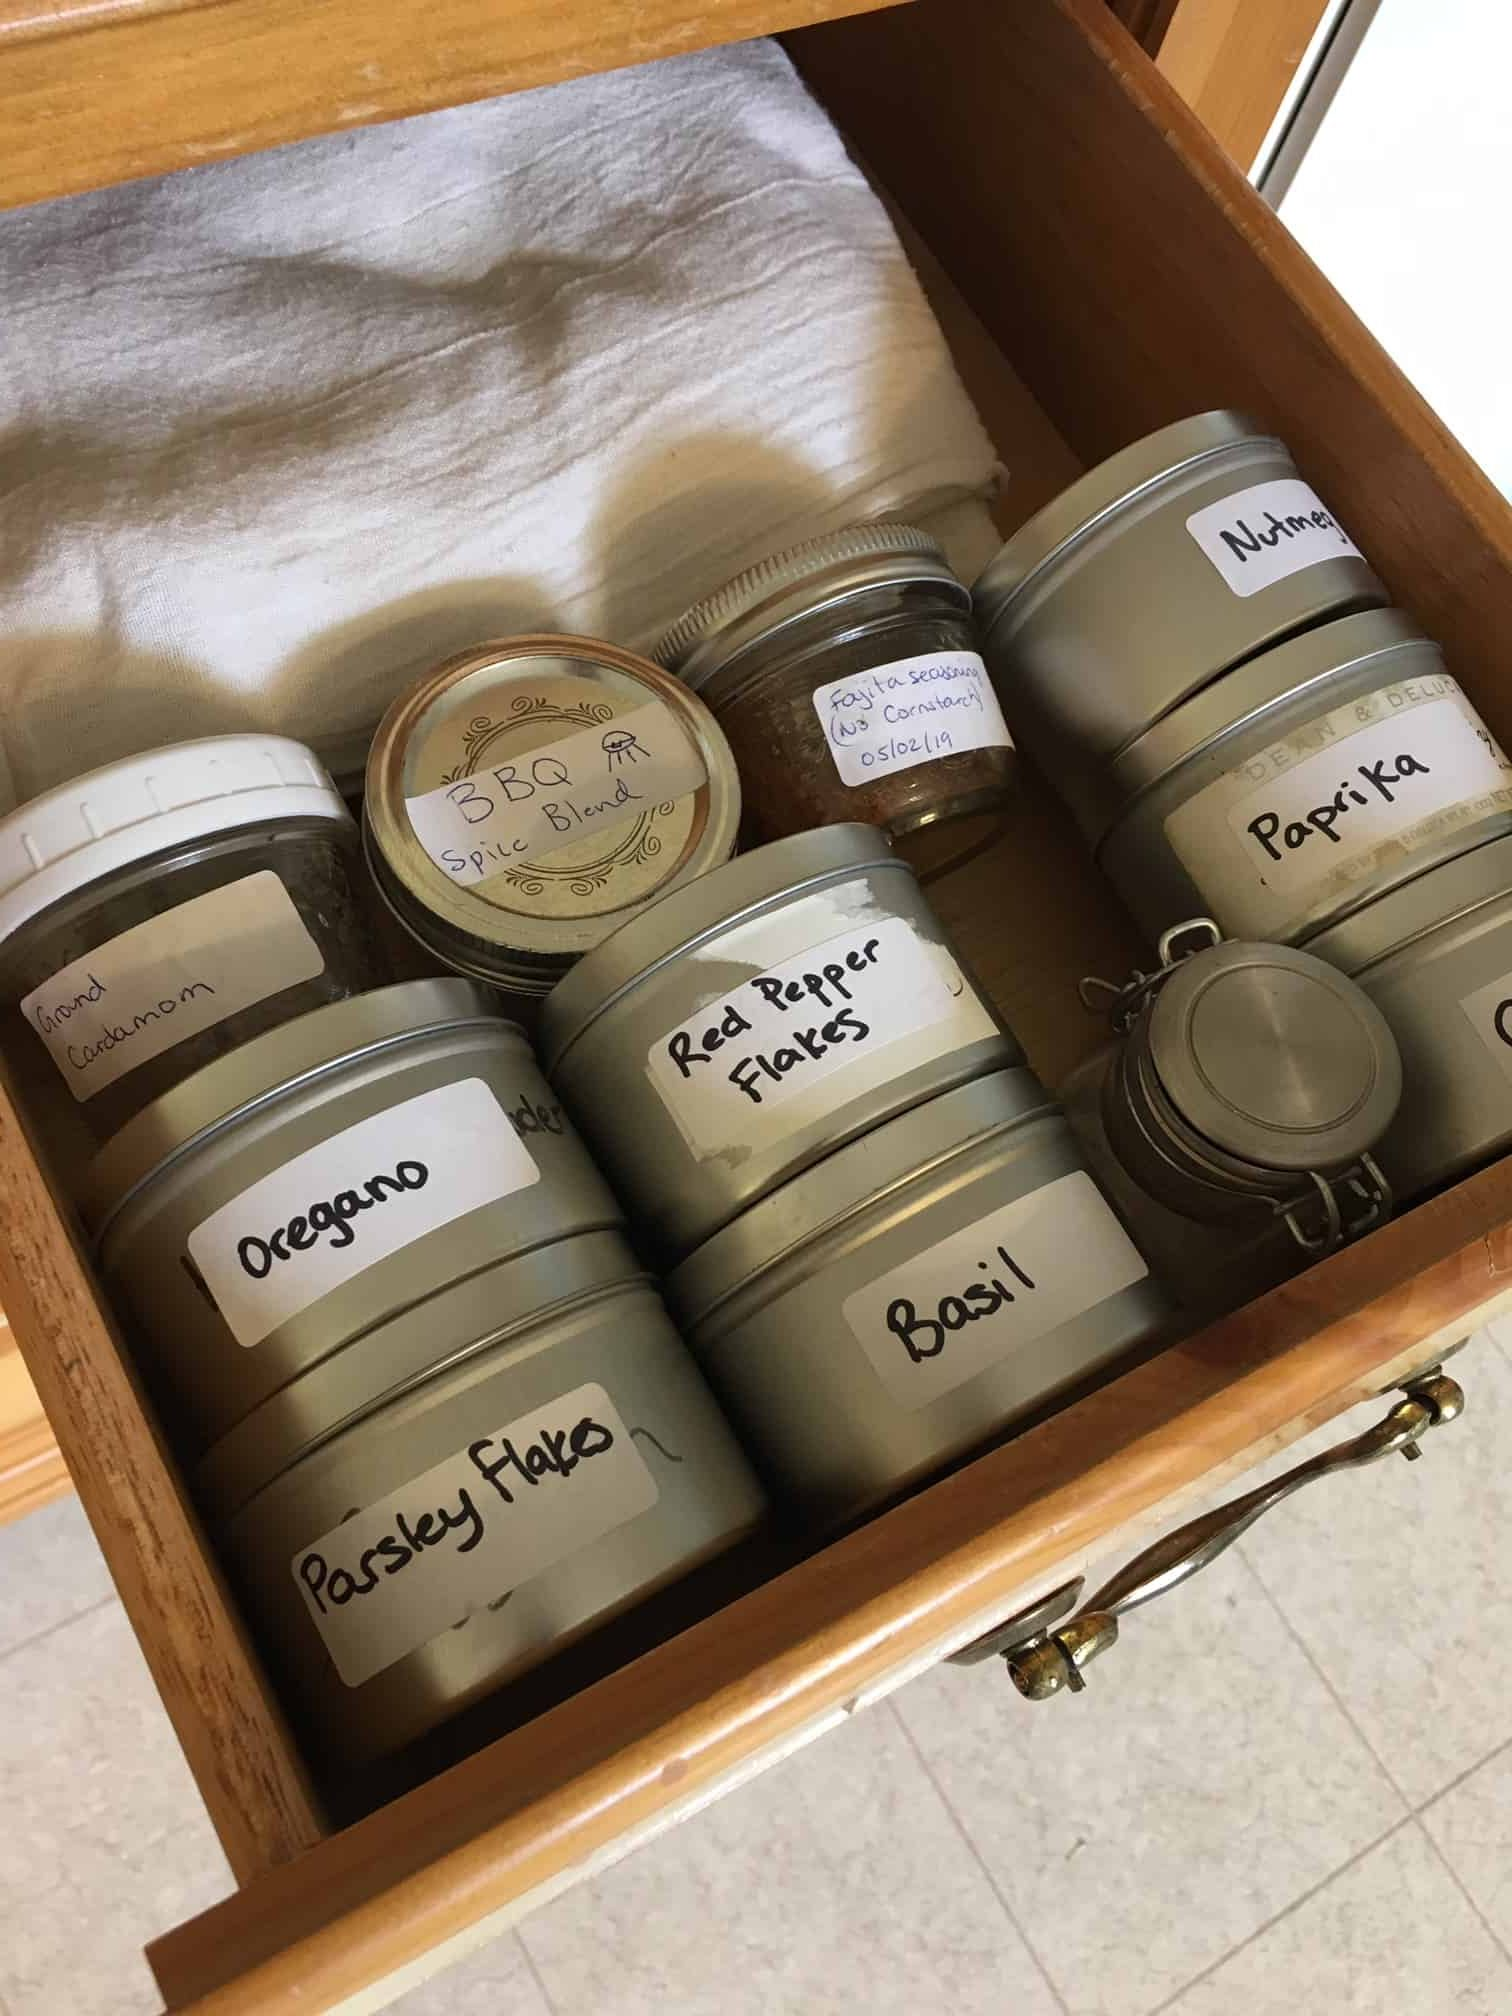 Spice storage ideas - put your spices into a drawer. This helps to keep them off your countertop.